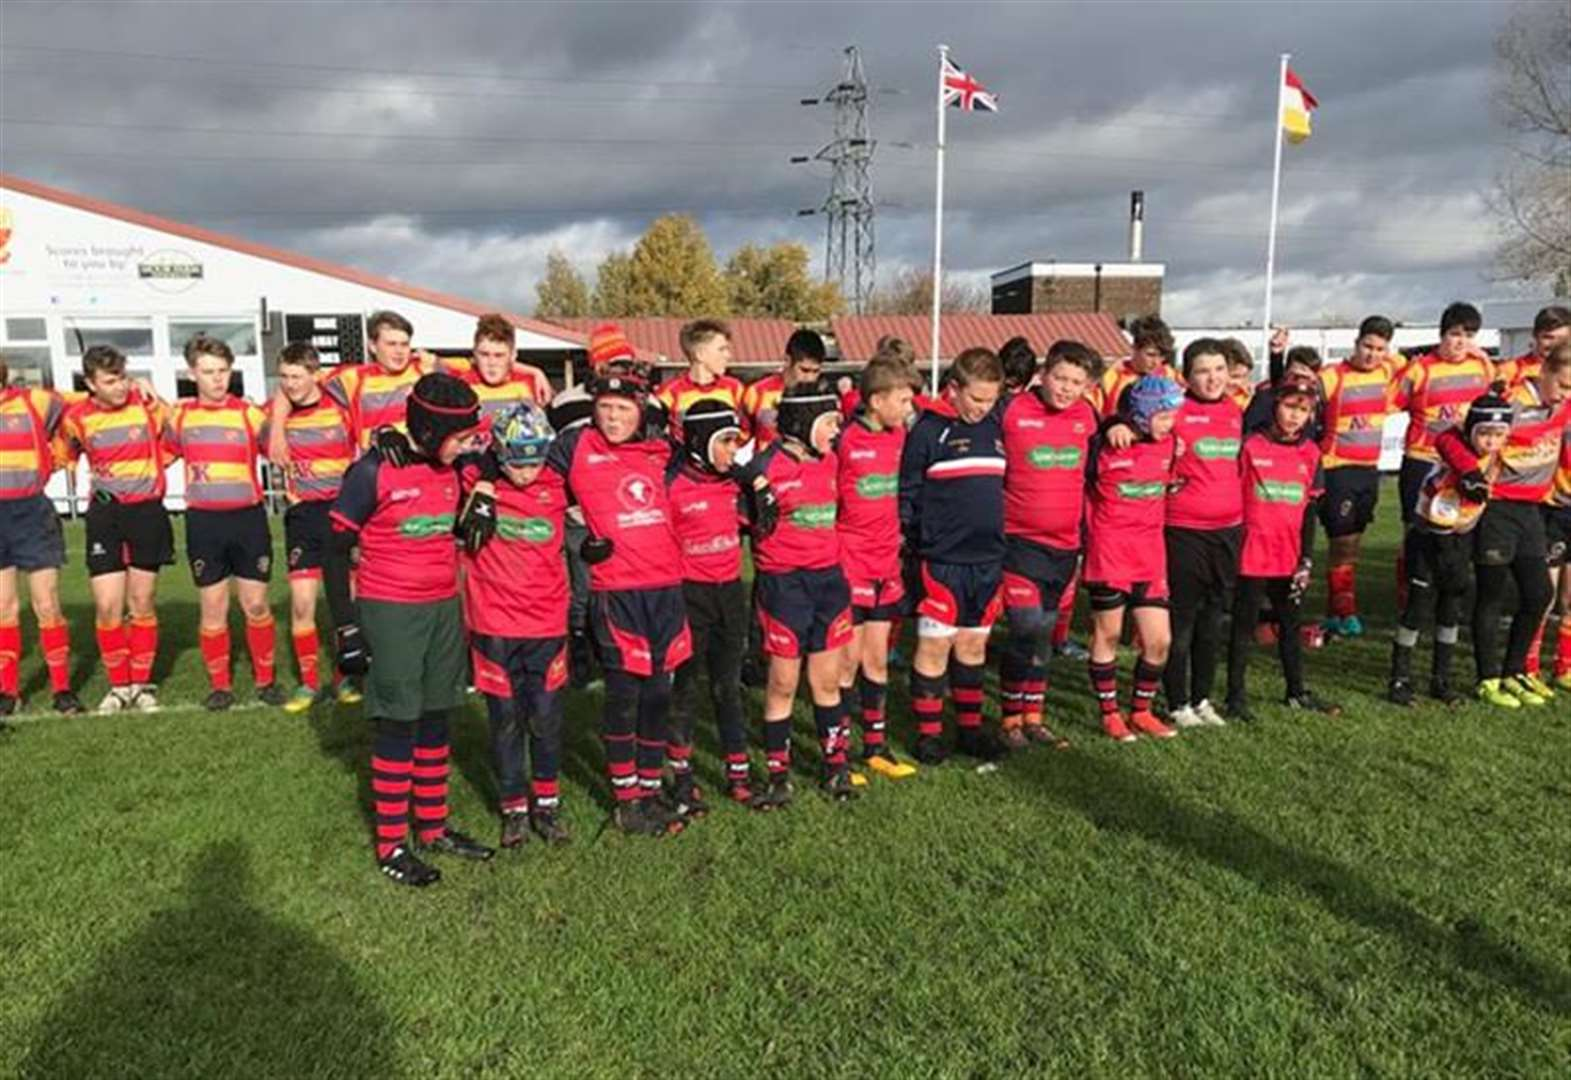 Wisbech U11s' Remembrance Sunday rugby tribute to the Fallen